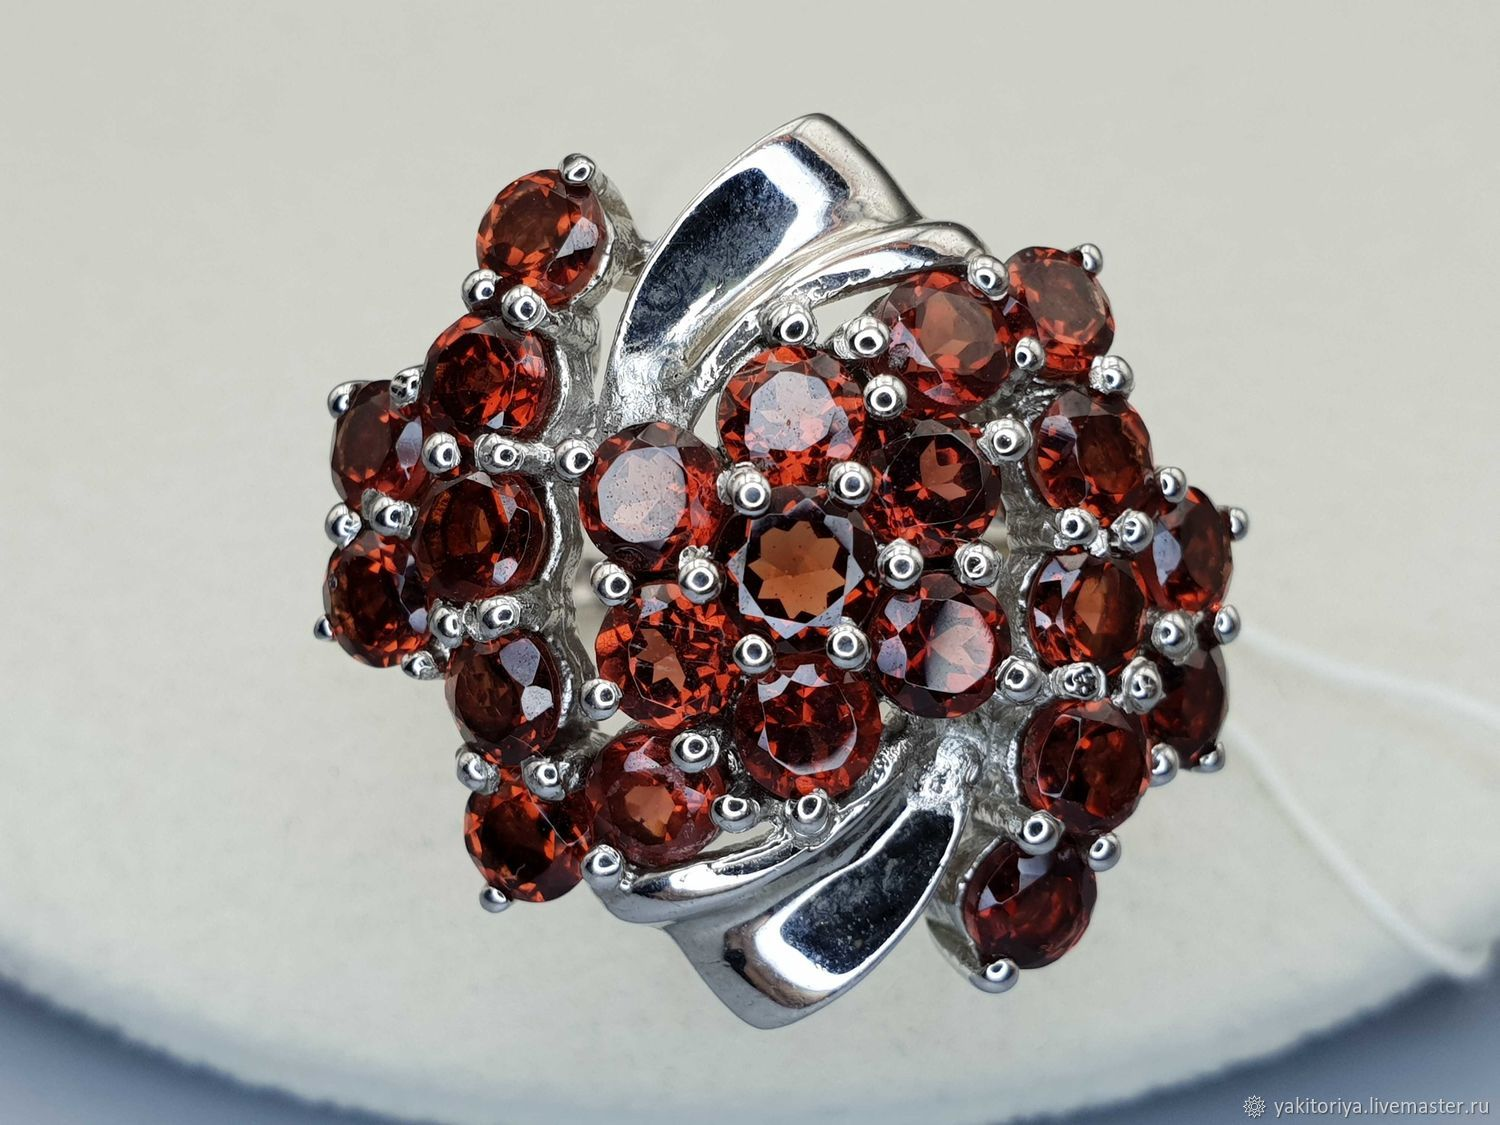 Silver ring with garnets, Rings, Moscow,  Фото №1